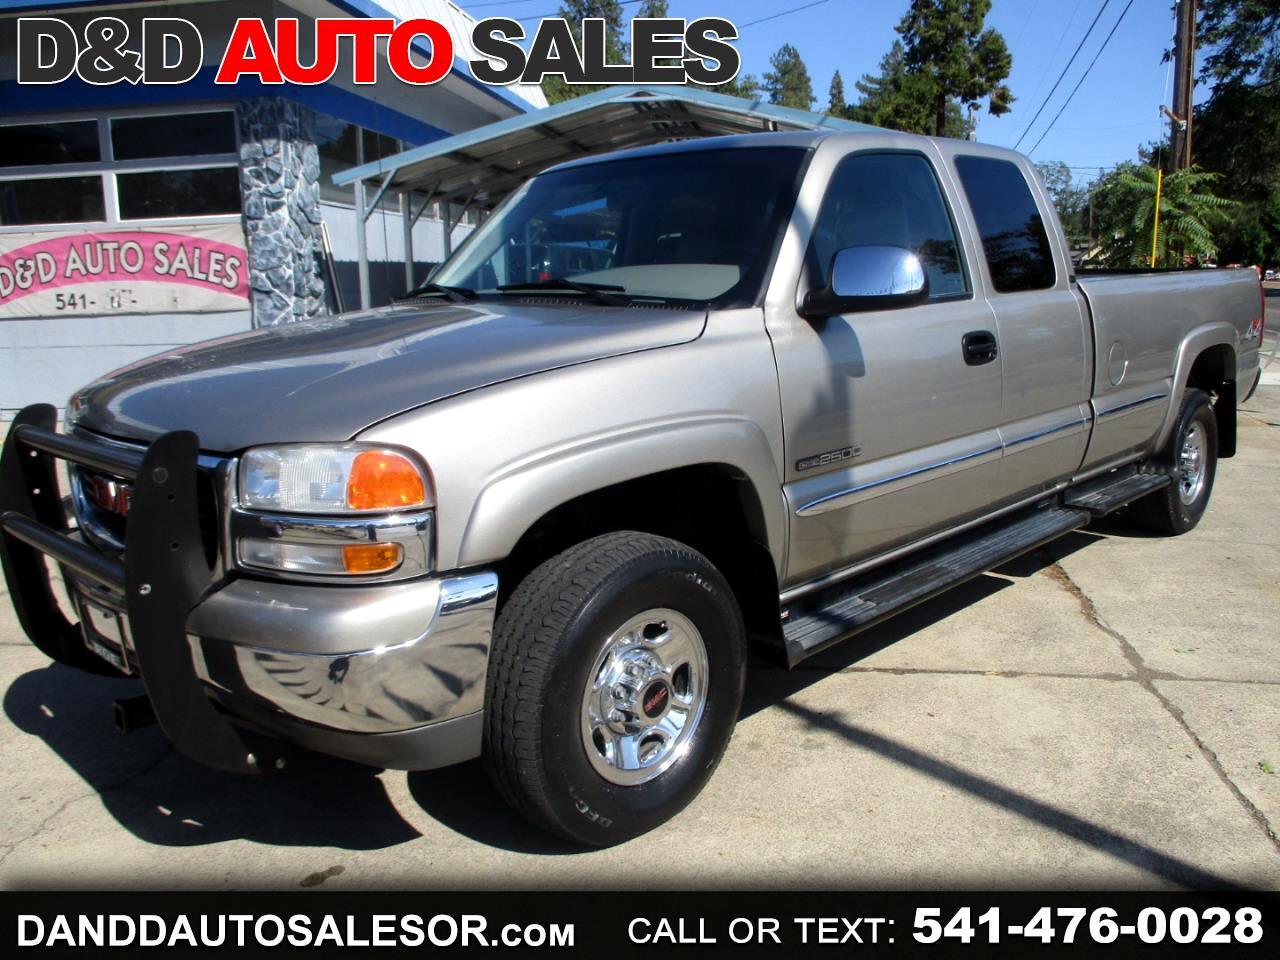 used 2000 gmc sierra 2500 sle 4 door ext cab long bed 4wd for sale in grants pass or 97526 d d auto sales used cars grants pass or